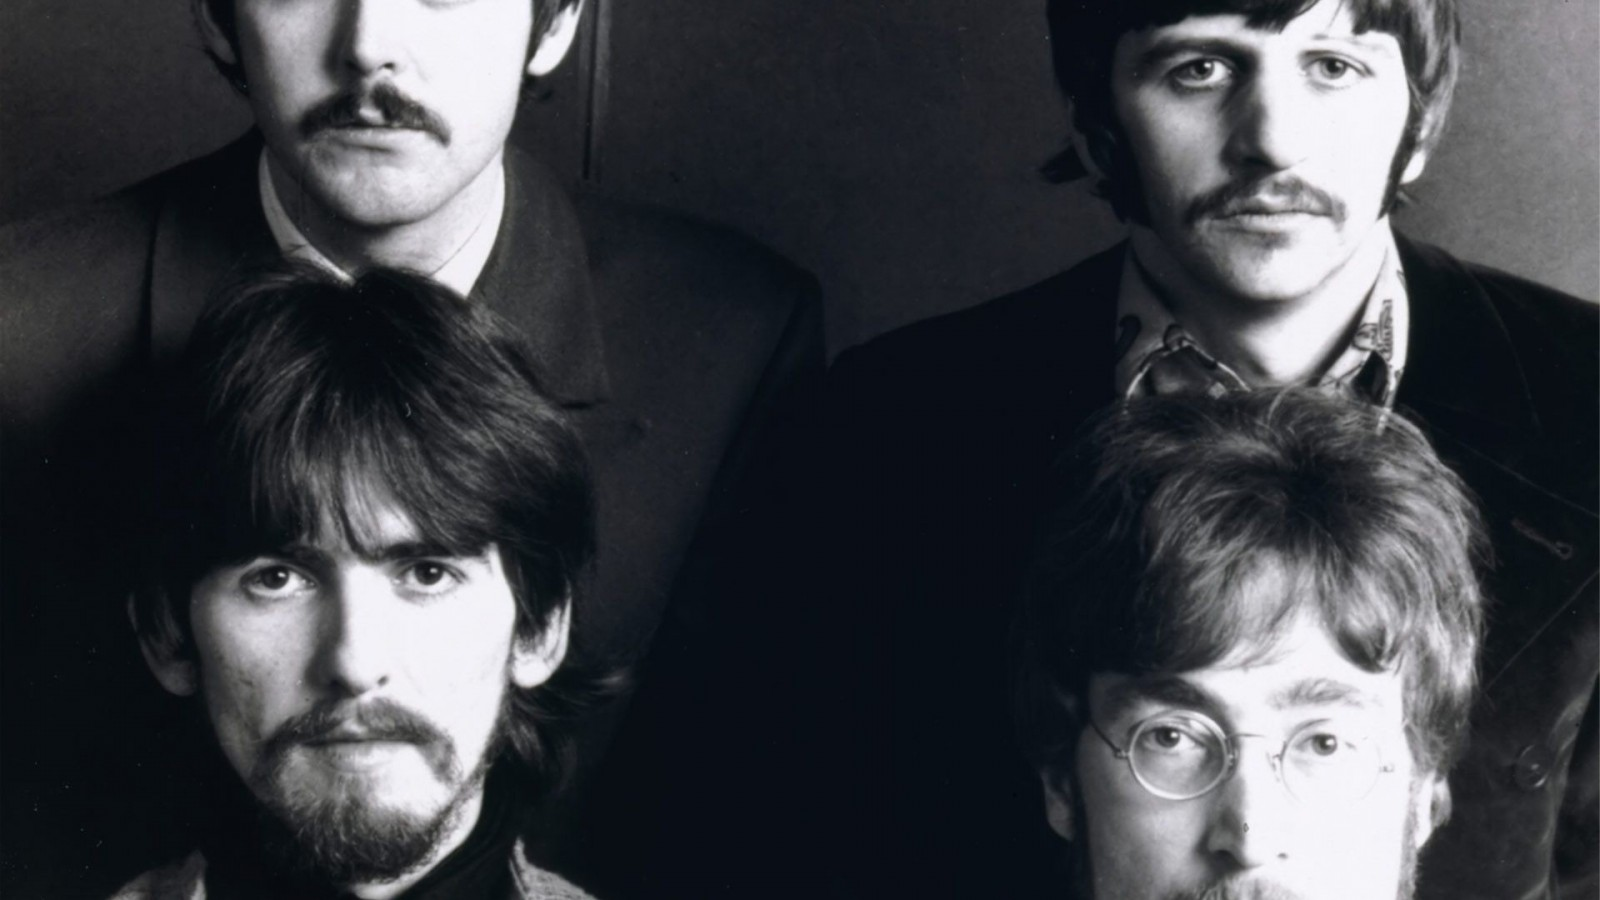 The beatles history celebrity HD Wallpaper